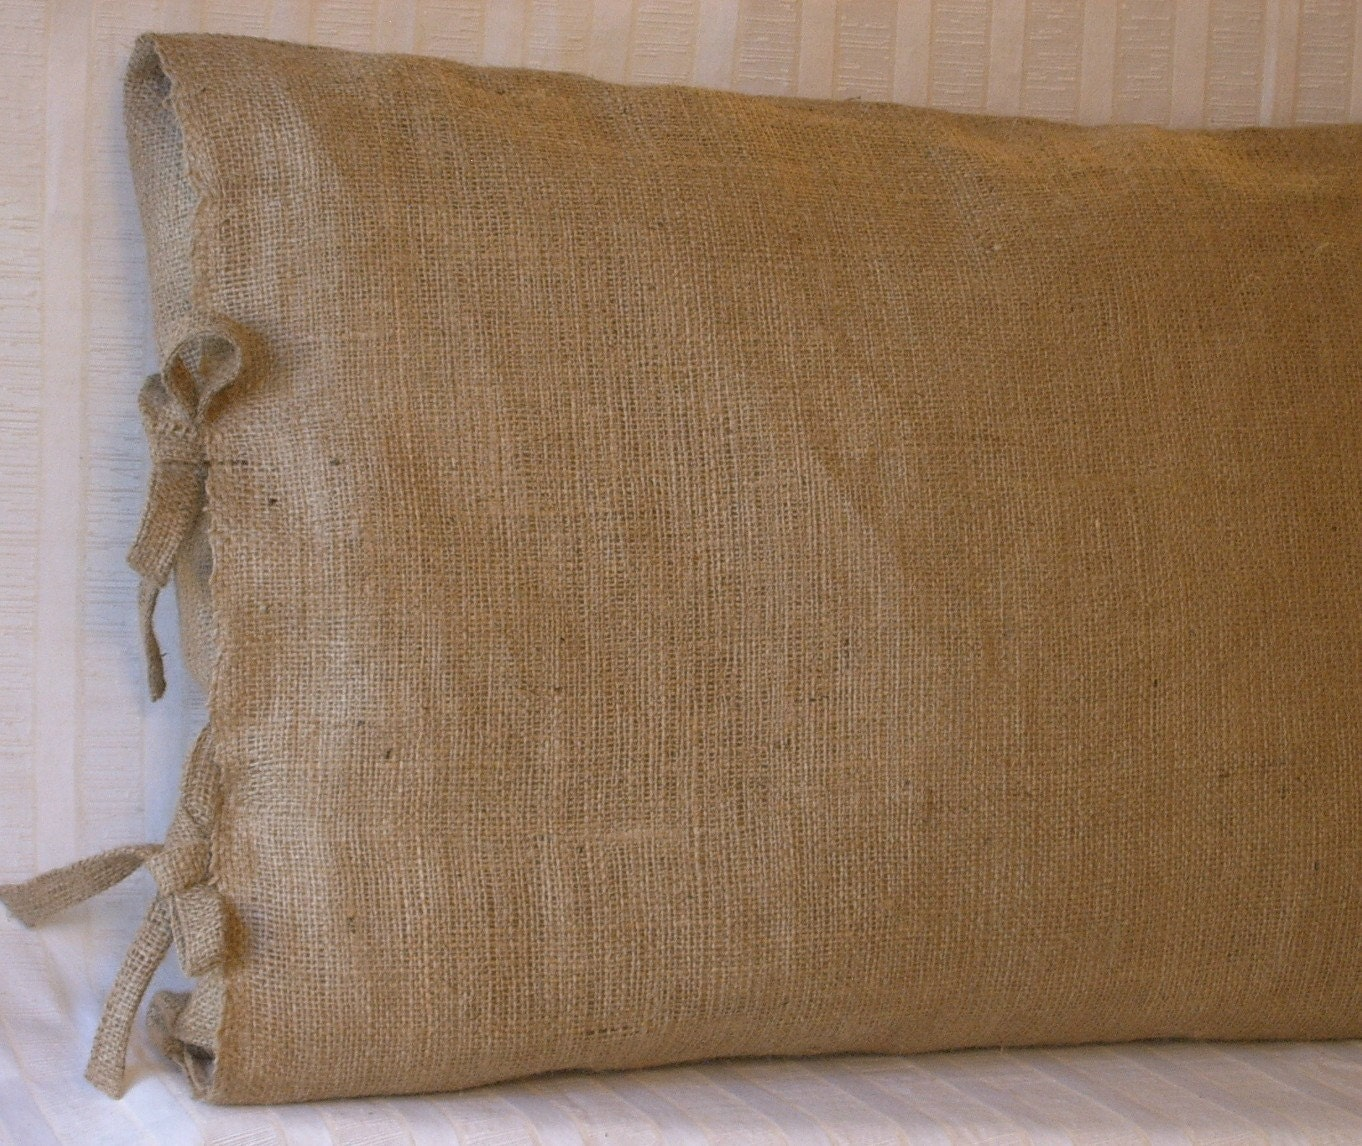 2 king burlap pillow shams with tie closure 36 x. Black Bedroom Furniture Sets. Home Design Ideas